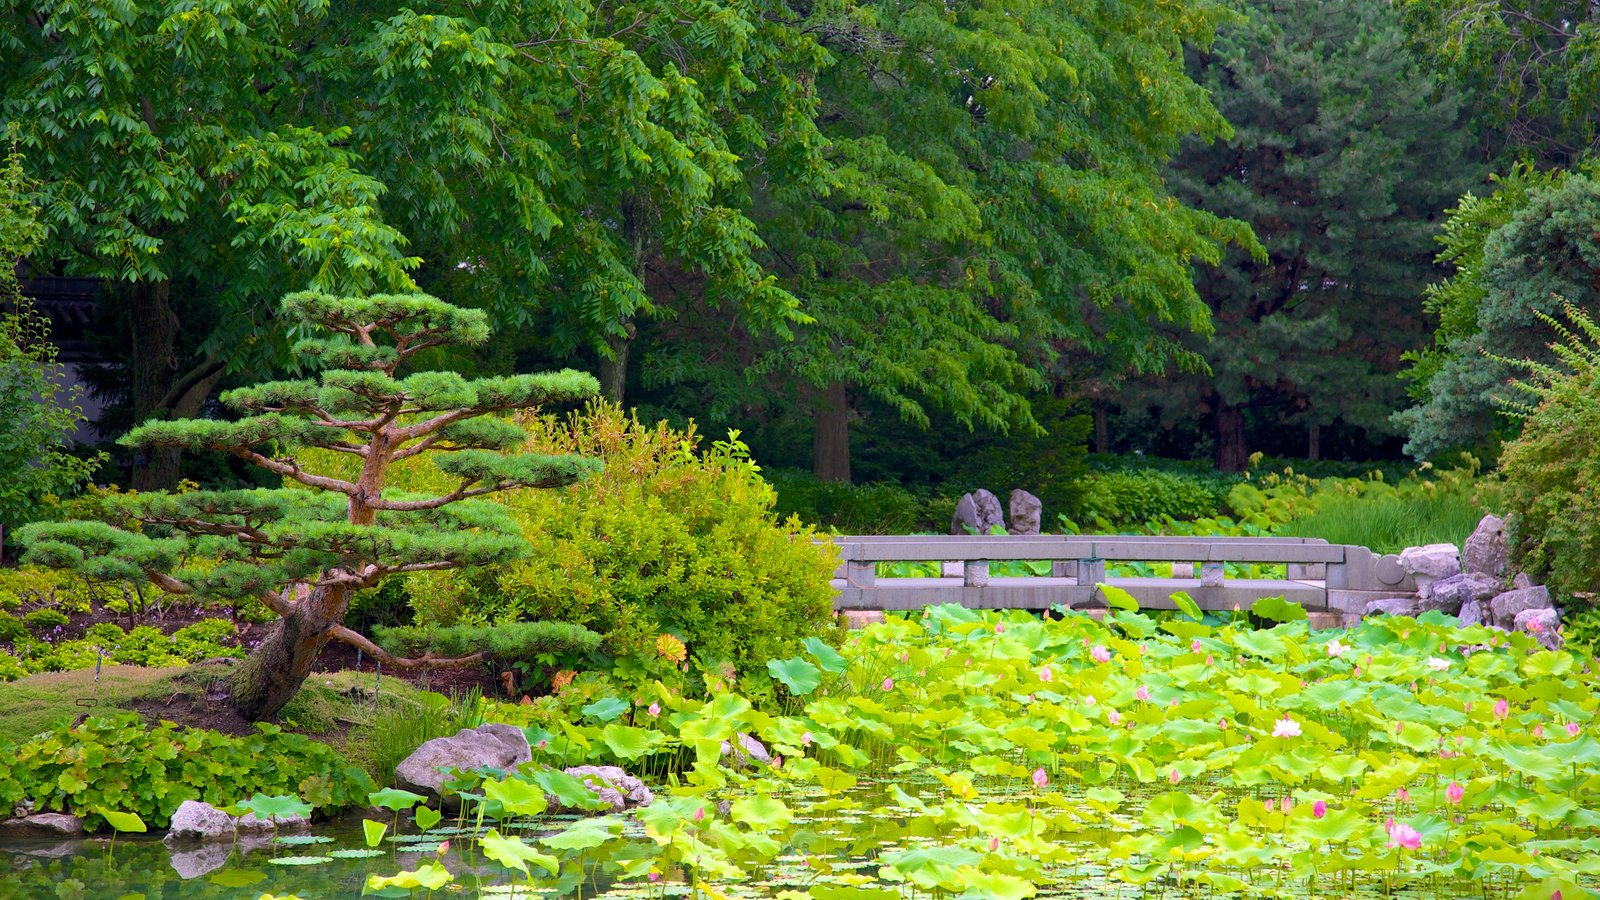 Montreal Botanical Garden Showing A Garden, A River Or Creek And A Bridge